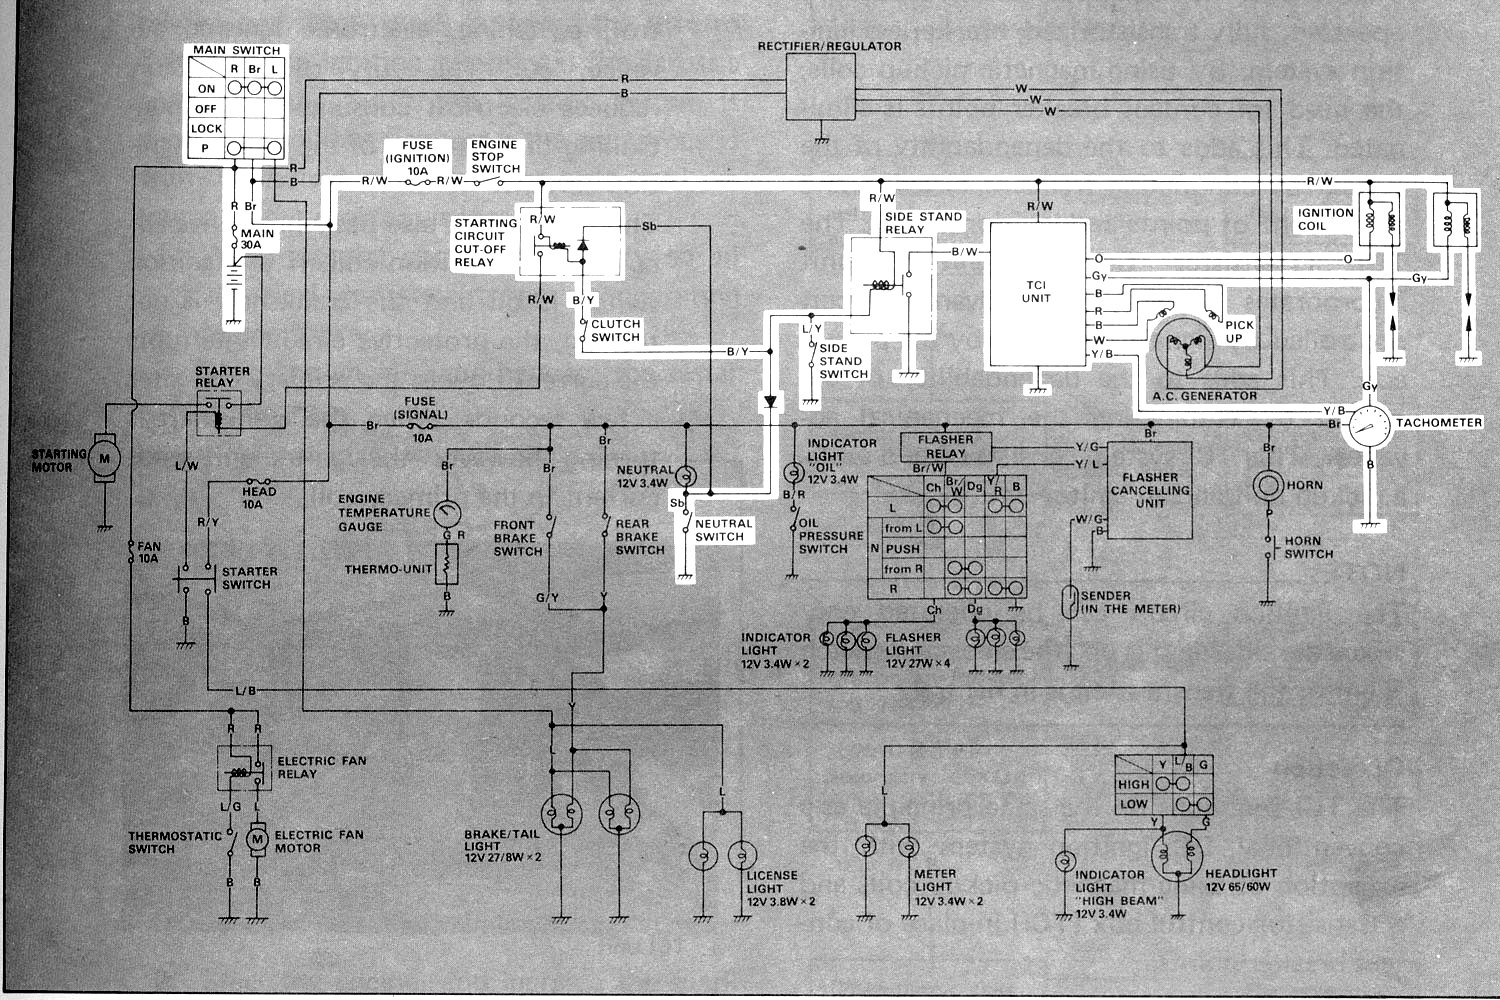 Yamaha Venture Wiring Diagram And Schematics Xs650 Free Picture Schematic Vehicle Diagrams Source 83 Basic Guide U2022 Rh Needpixies Com 1989